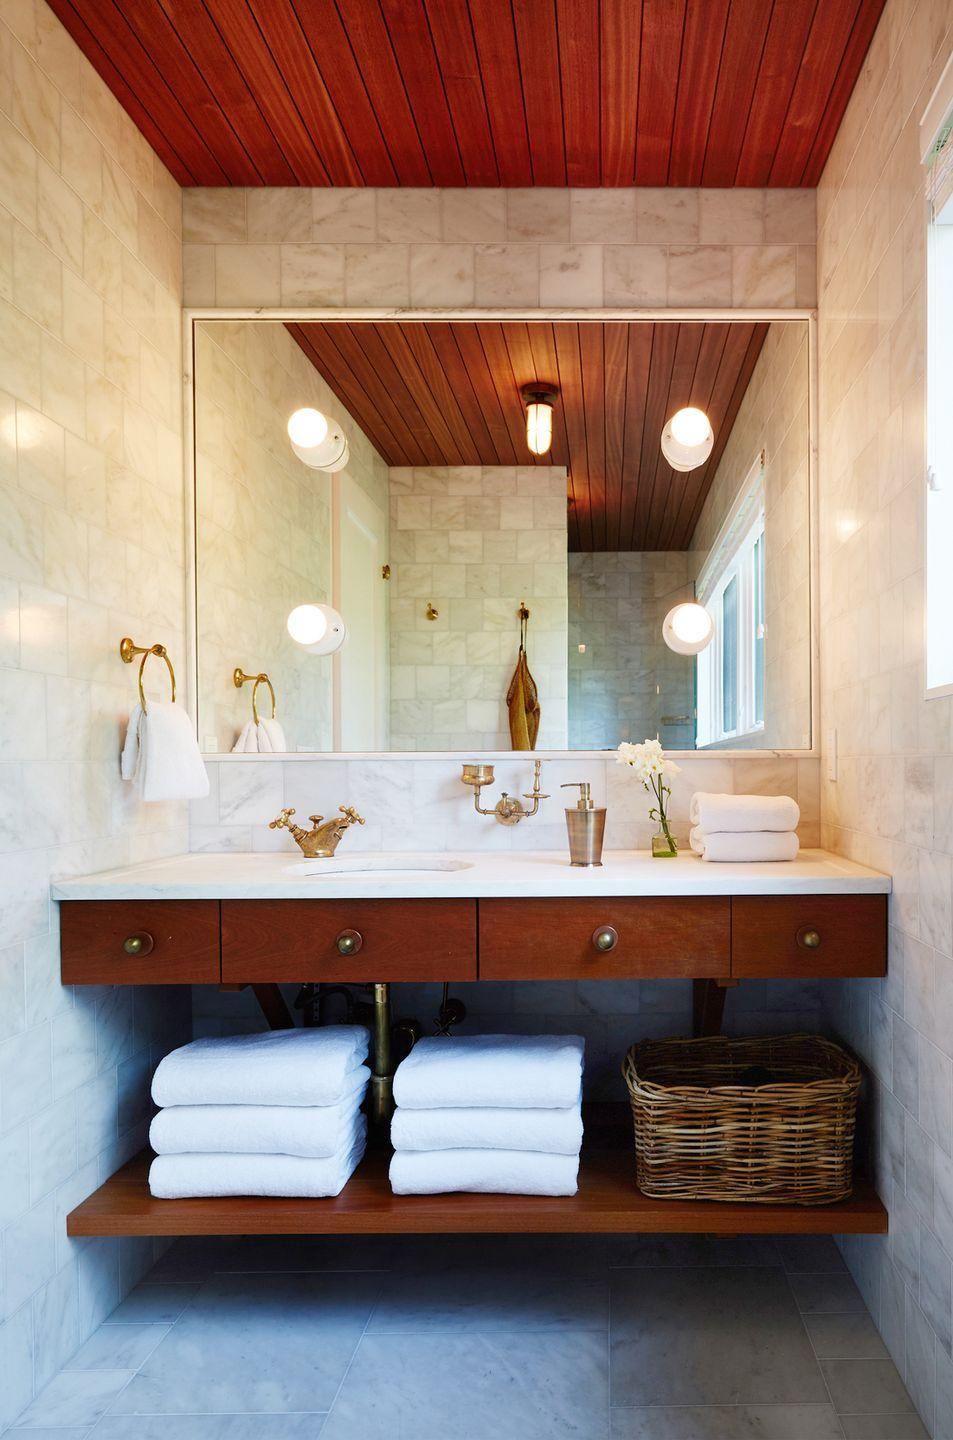 """<p>This Montauk bathroom designed by <a href=""""http://www.robertmckinley.com/residential#/mckinley-bungalow-federal/"""" rel=""""nofollow noopener"""" target=""""_blank"""" data-ylk=""""slk:Robert McKinley Studio"""" class=""""link rapid-noclick-resp"""">Robert McKinley Studio</a> feels both woodsy and intimate, expansive and cosmopolitan. That's thanks to the minimalist color palette that lets the materials do the talking and nods to the surrounding environment, like the nautical pendant lamp, long, parallel wood panels, and glossy natural stone tiles. </p>"""